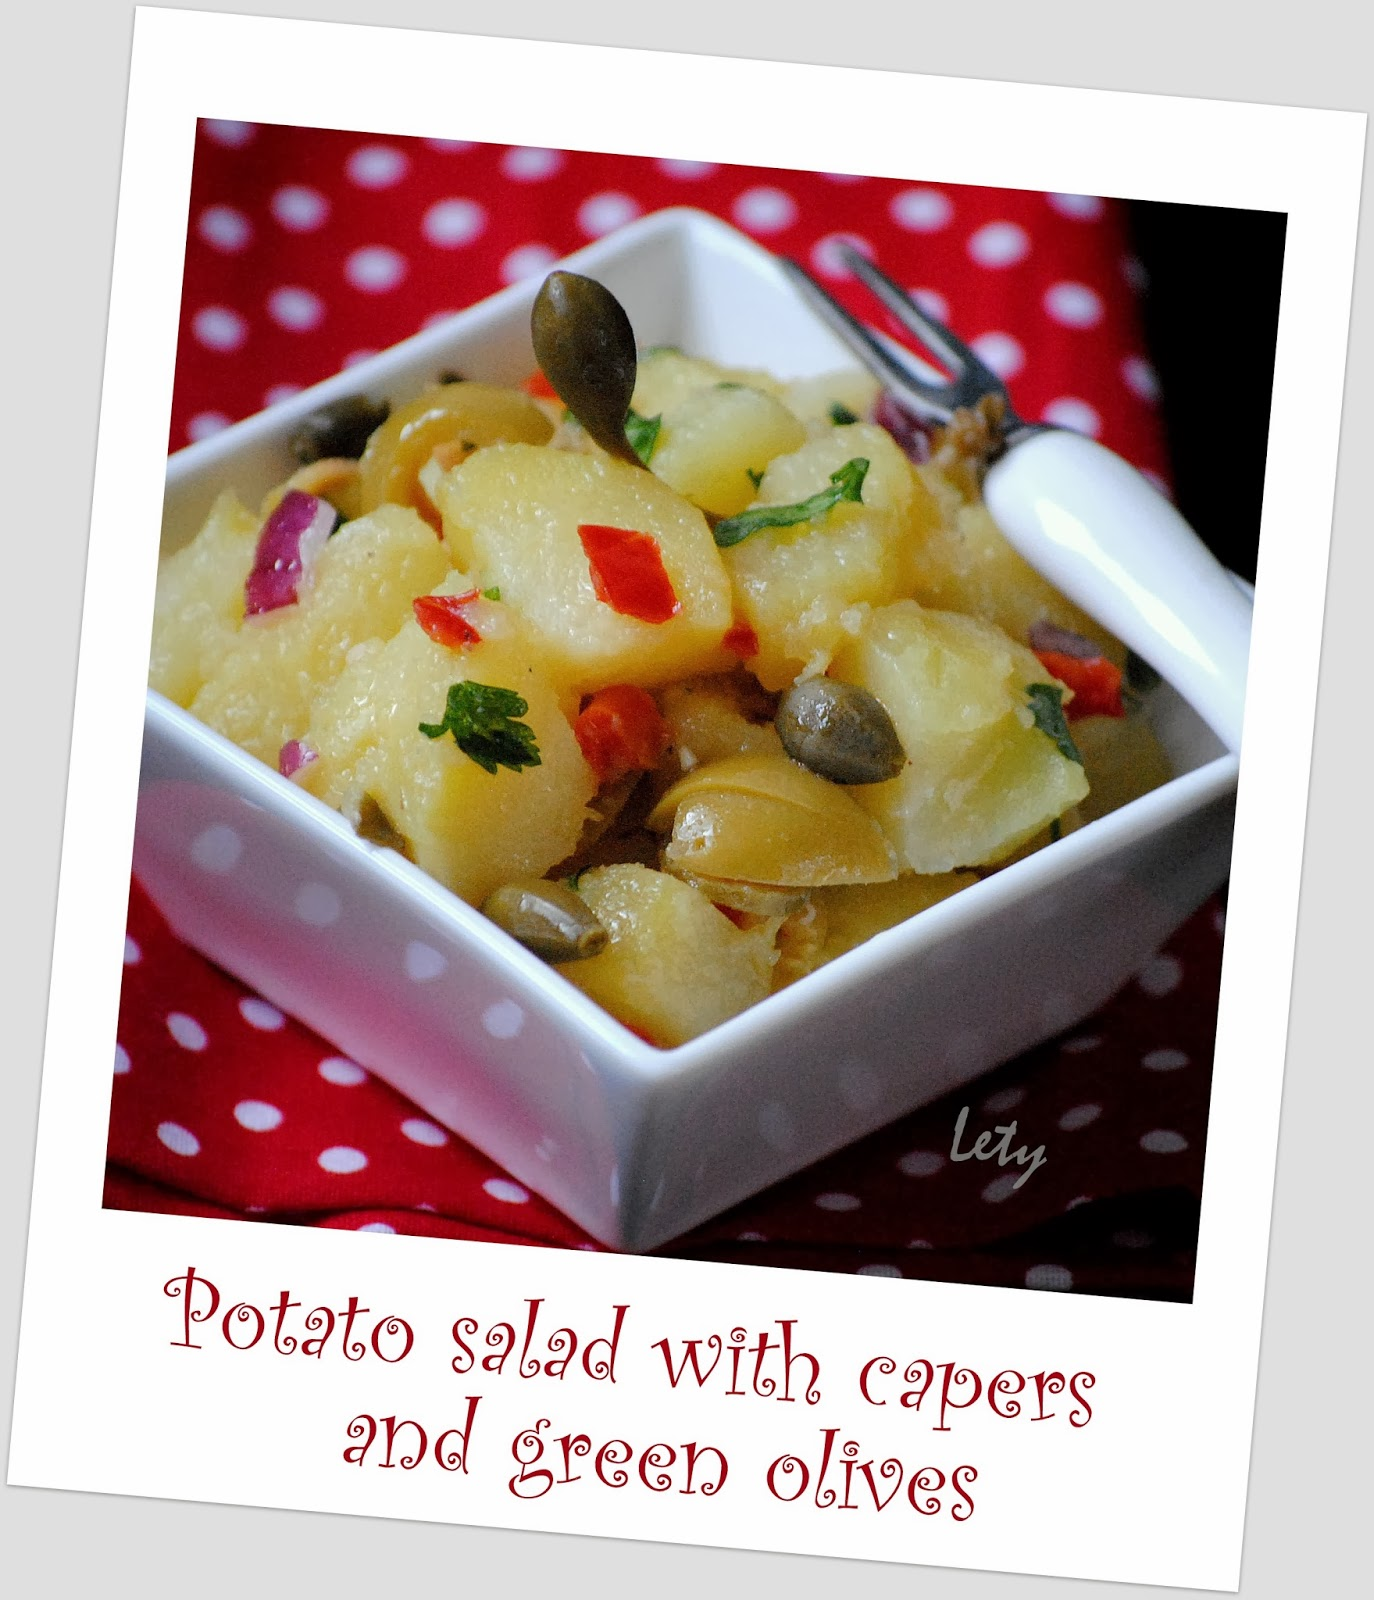 ... с маслини / Potato salad with capers and green olives